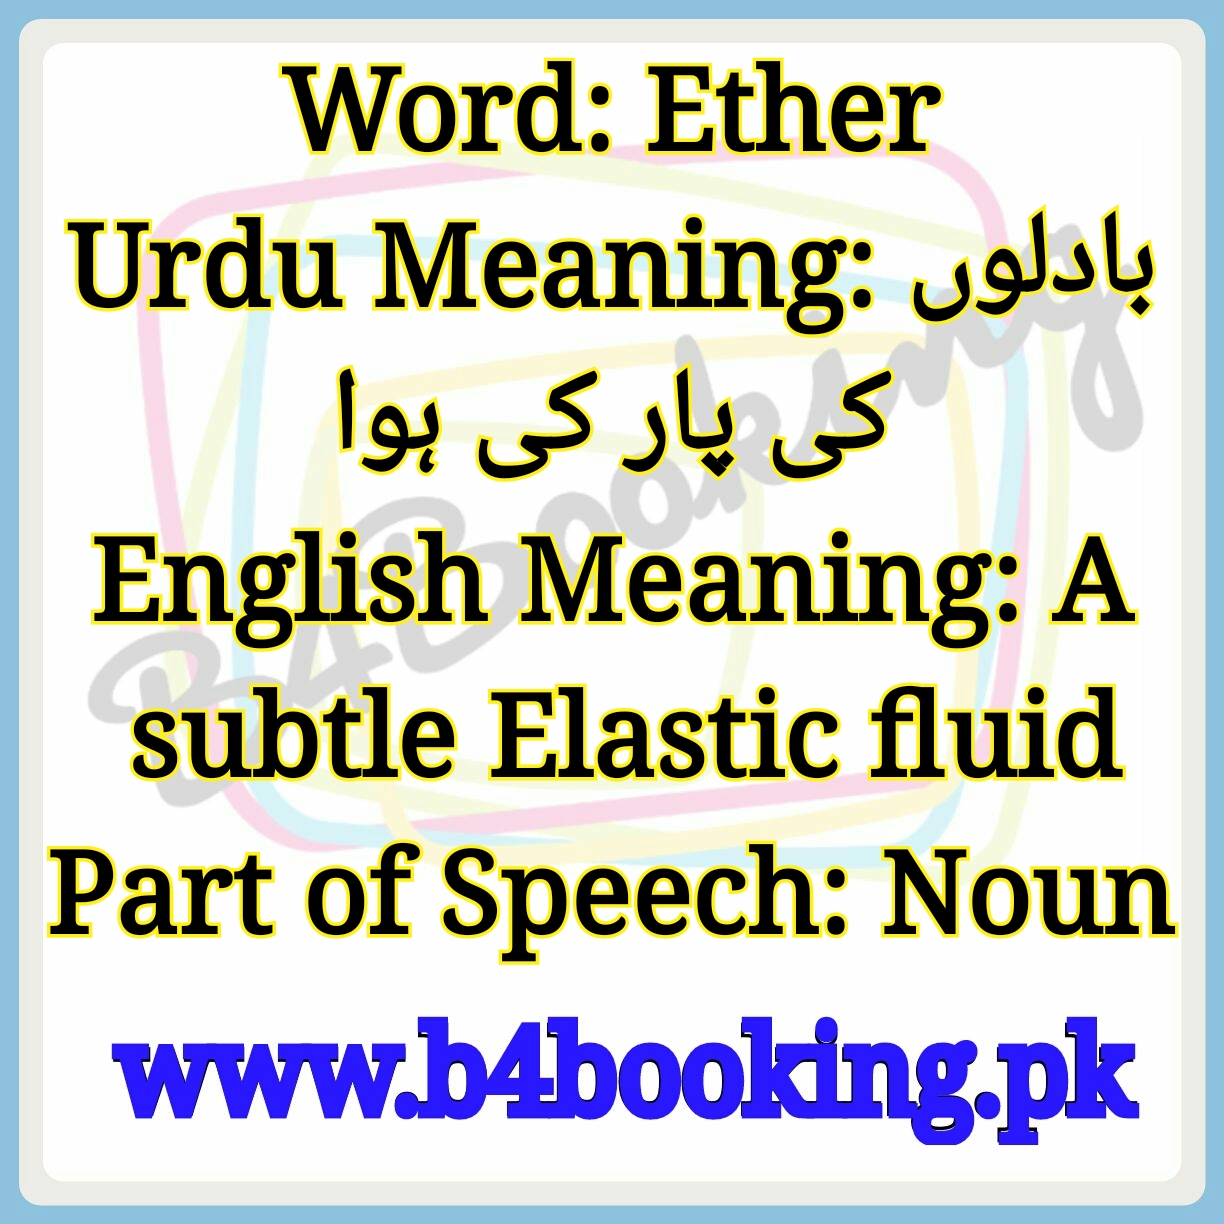 Top Five Meaning Of Subtle In English And Urdu - Circus